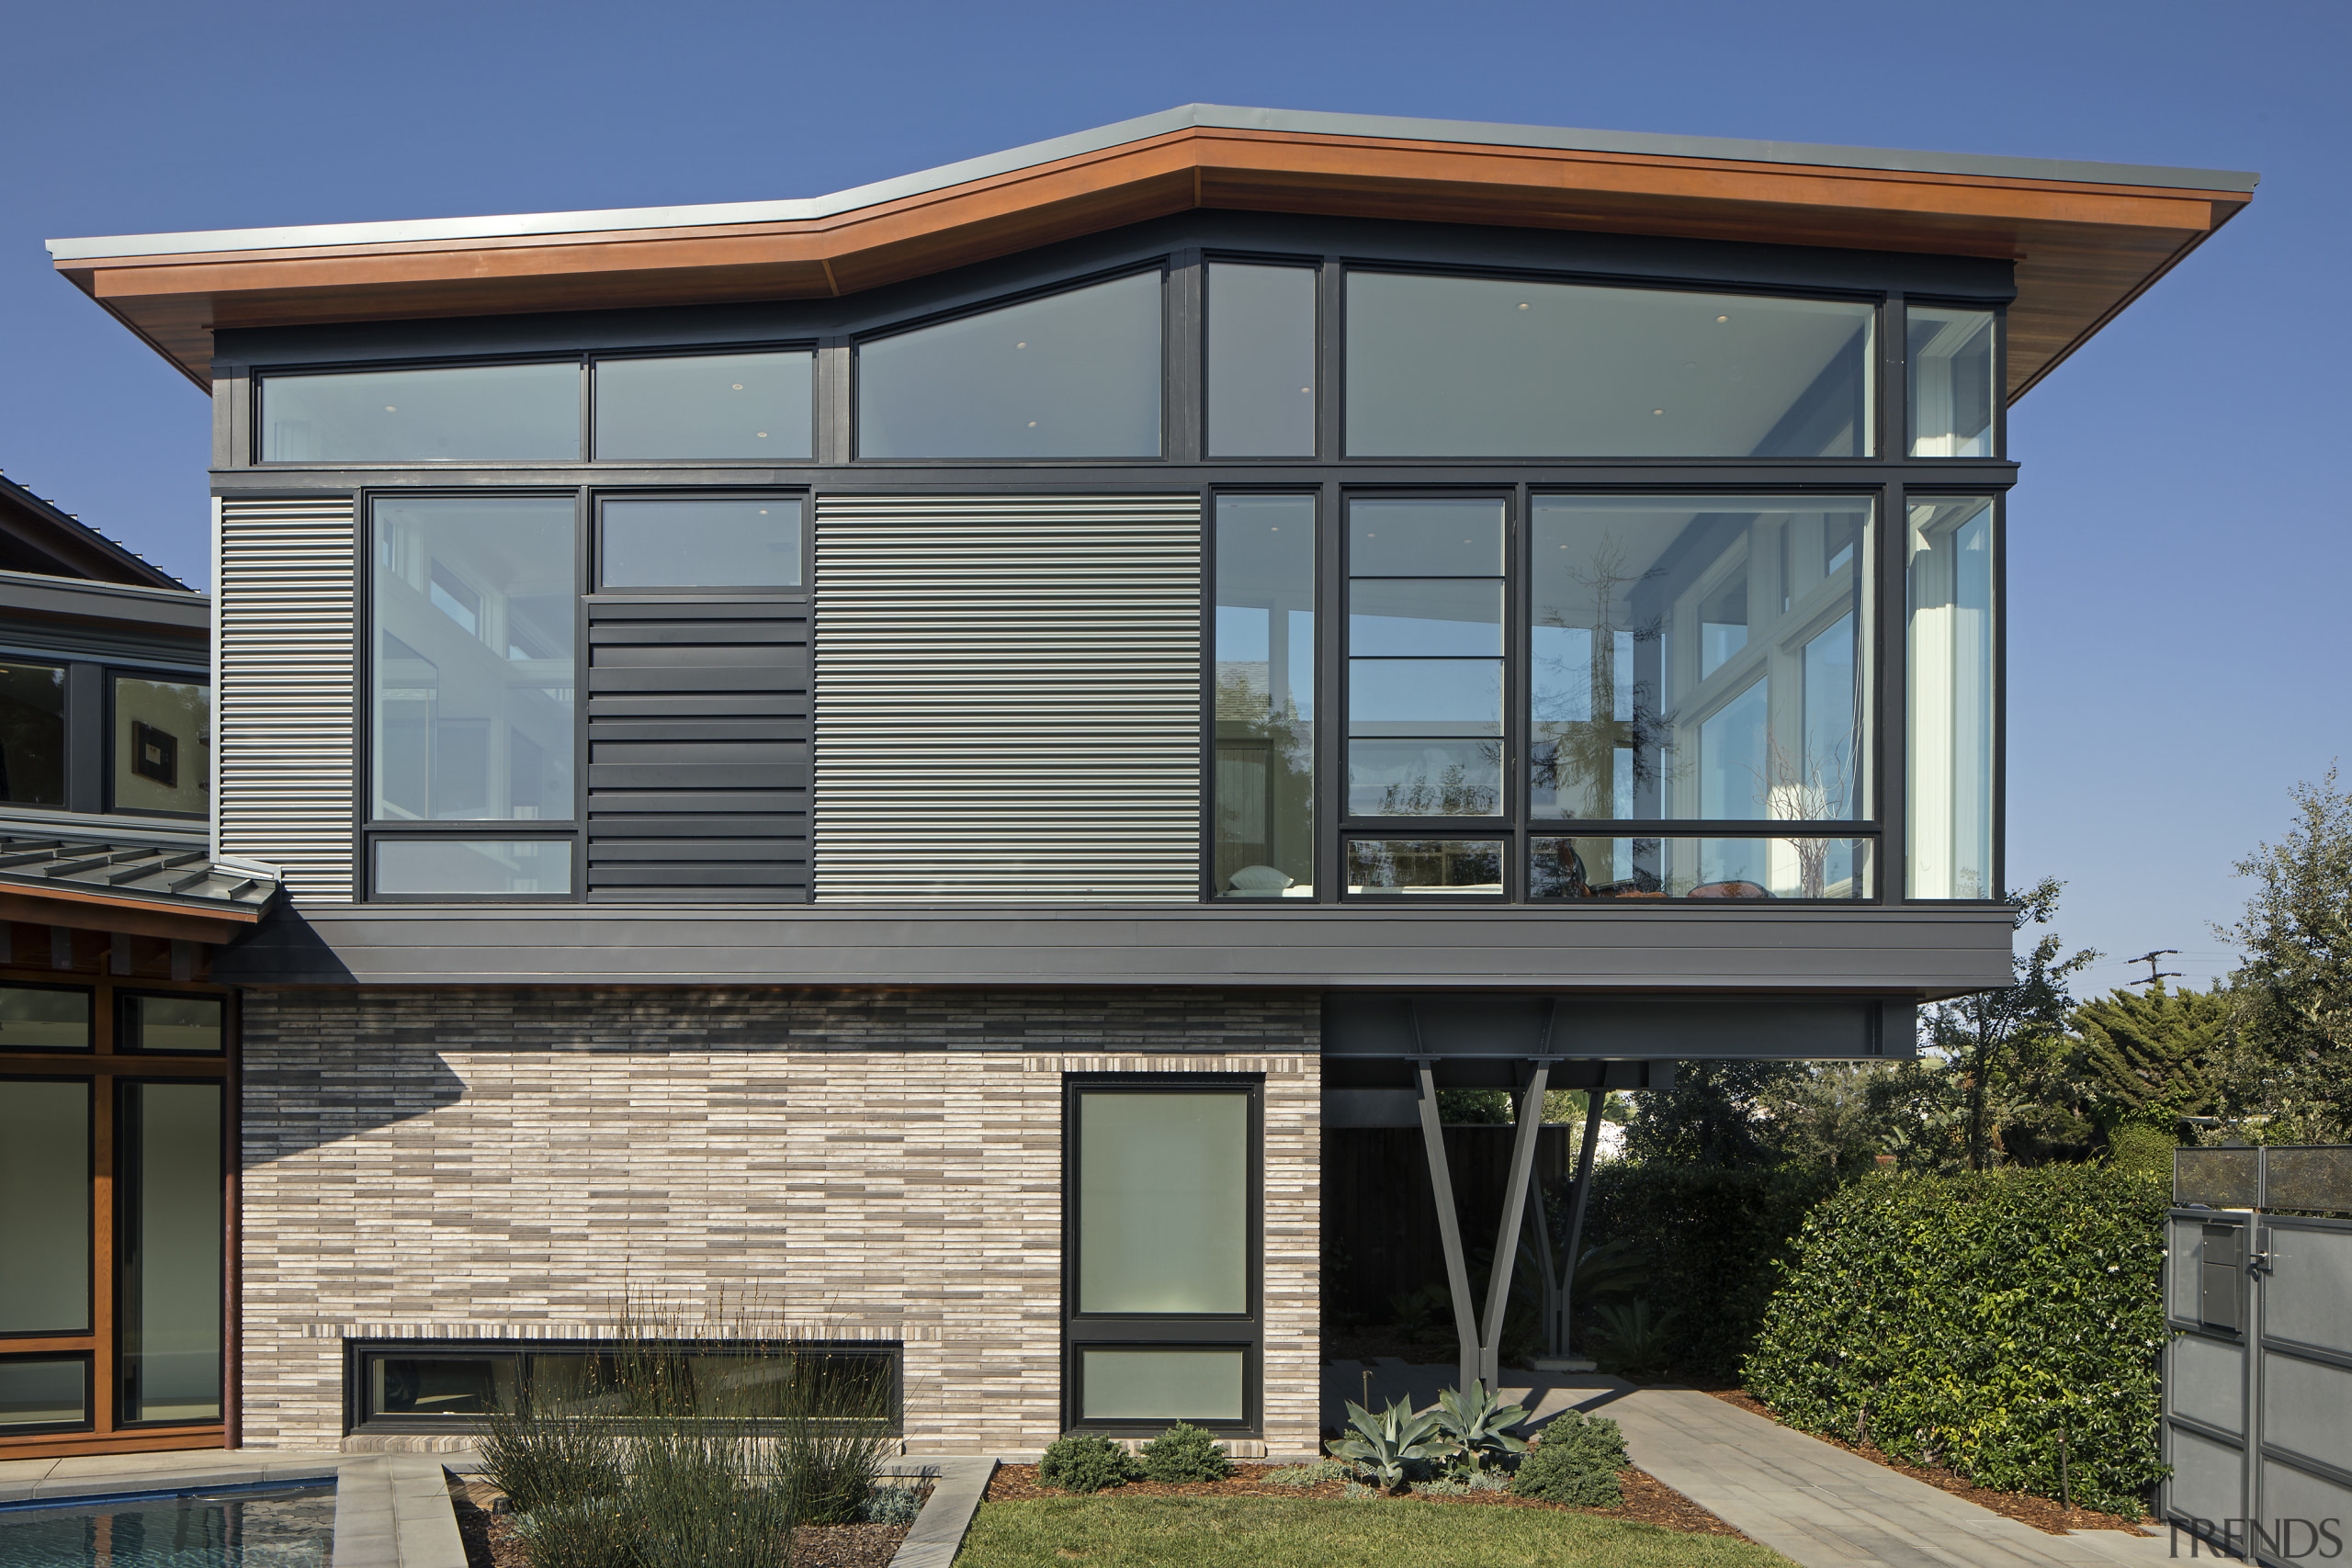 The roof shape above the private bedroom wing architecture, building, elevation, facade, home, house, property, real estate, residential area, siding, window, gray, black